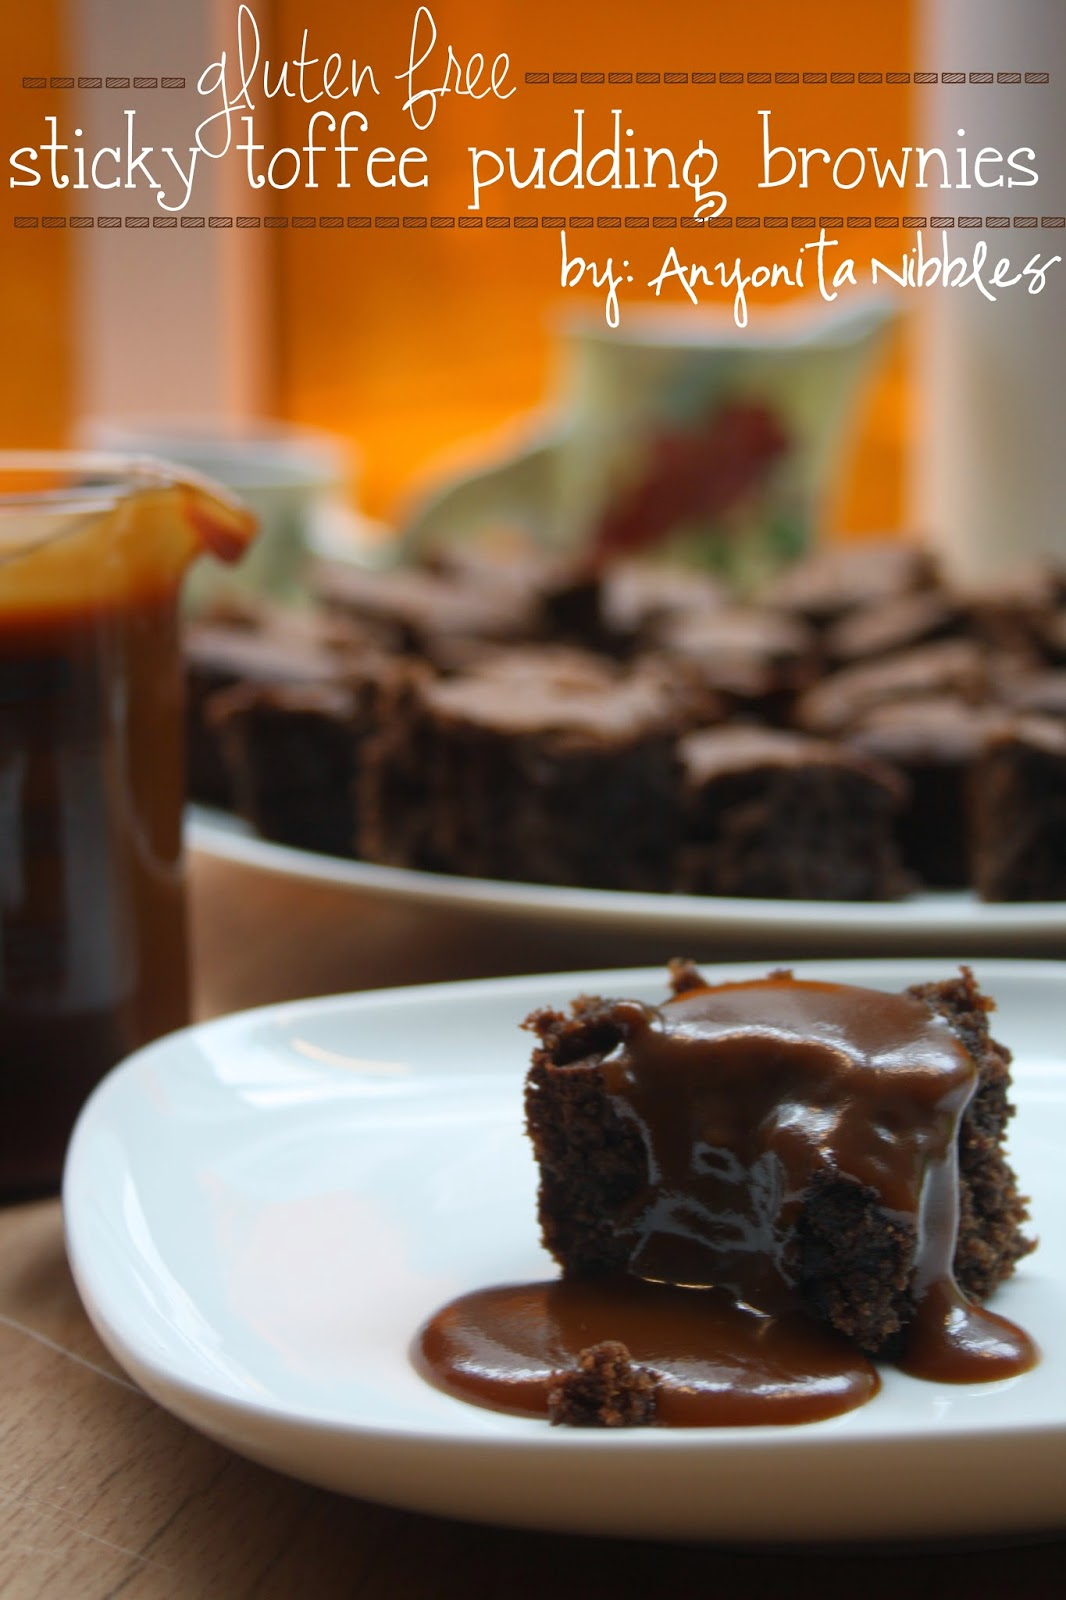 Gluten Free Sticky Toffee Pudding Brownies with Toffee Sauce from Anyonita Nibbles